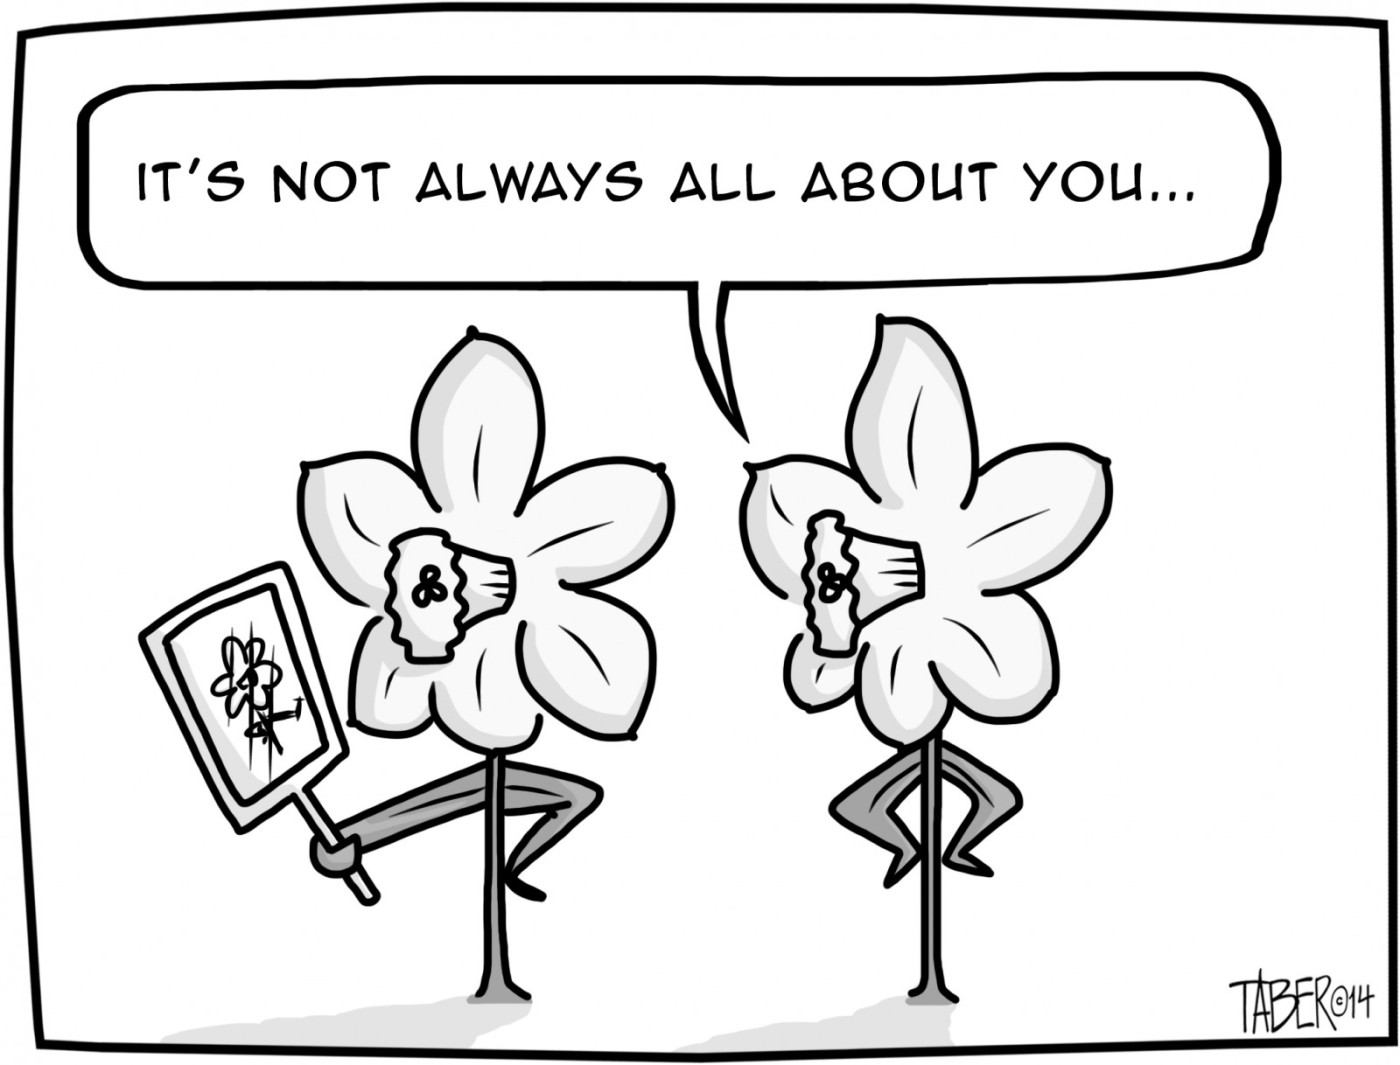 springtime flowers and their foibles the cartoons of forest taber